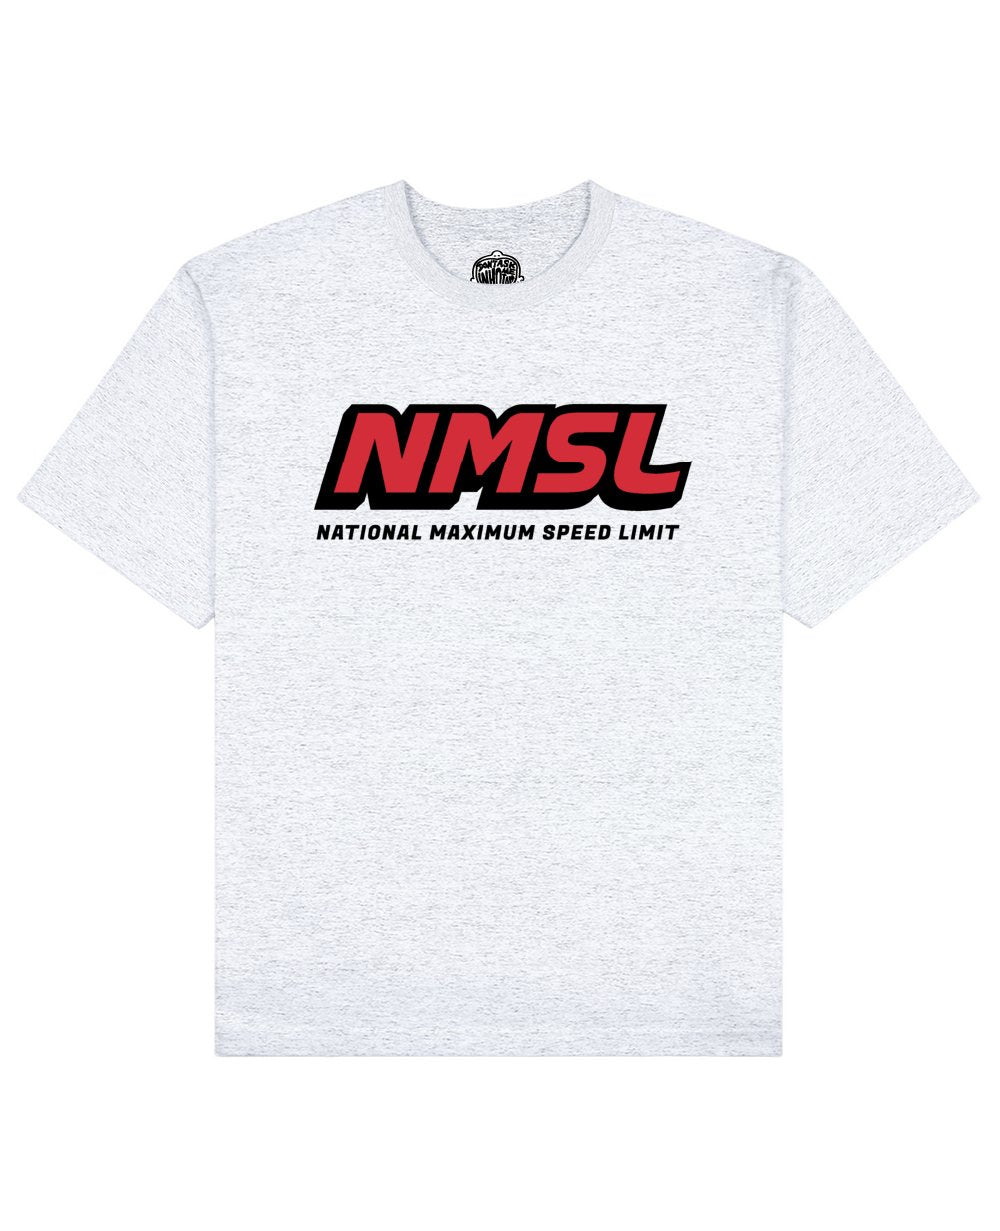 NMSL Print T-shirt in Light Gray - T-Shirts - Don't ask me who I am - BRANMA